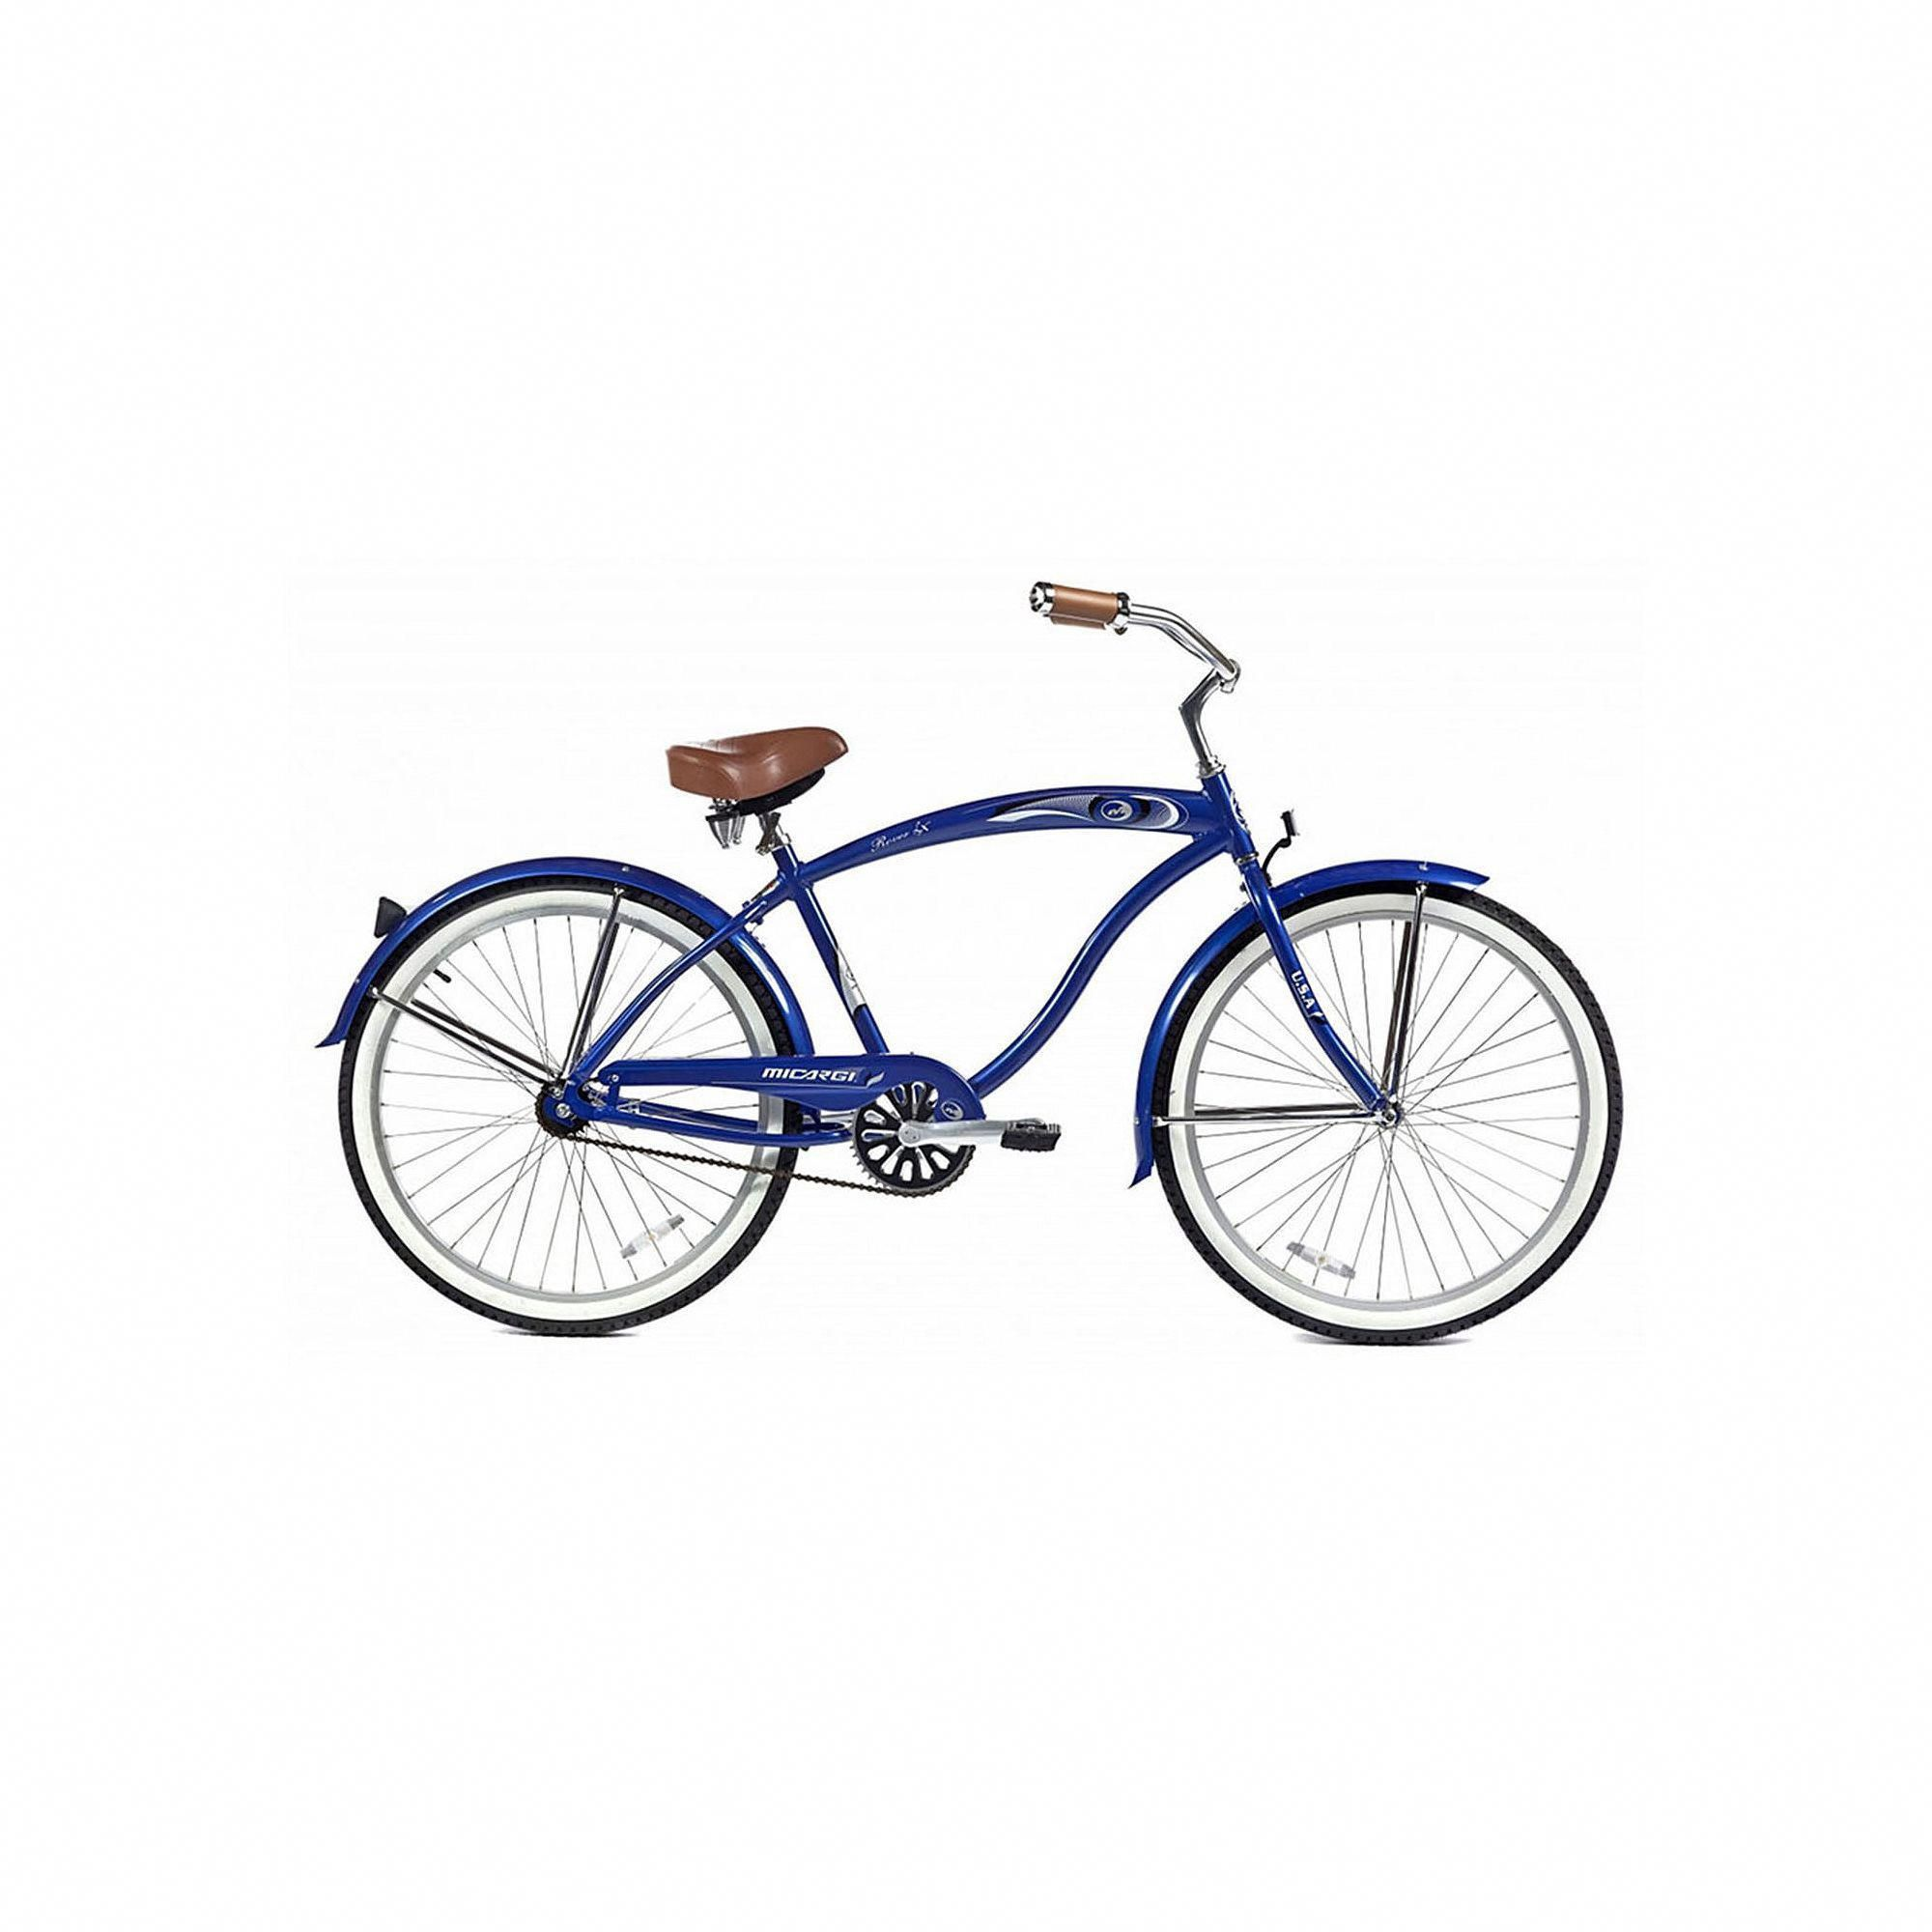 Types Of Bikes With Images Cool Bike Accessories Bike